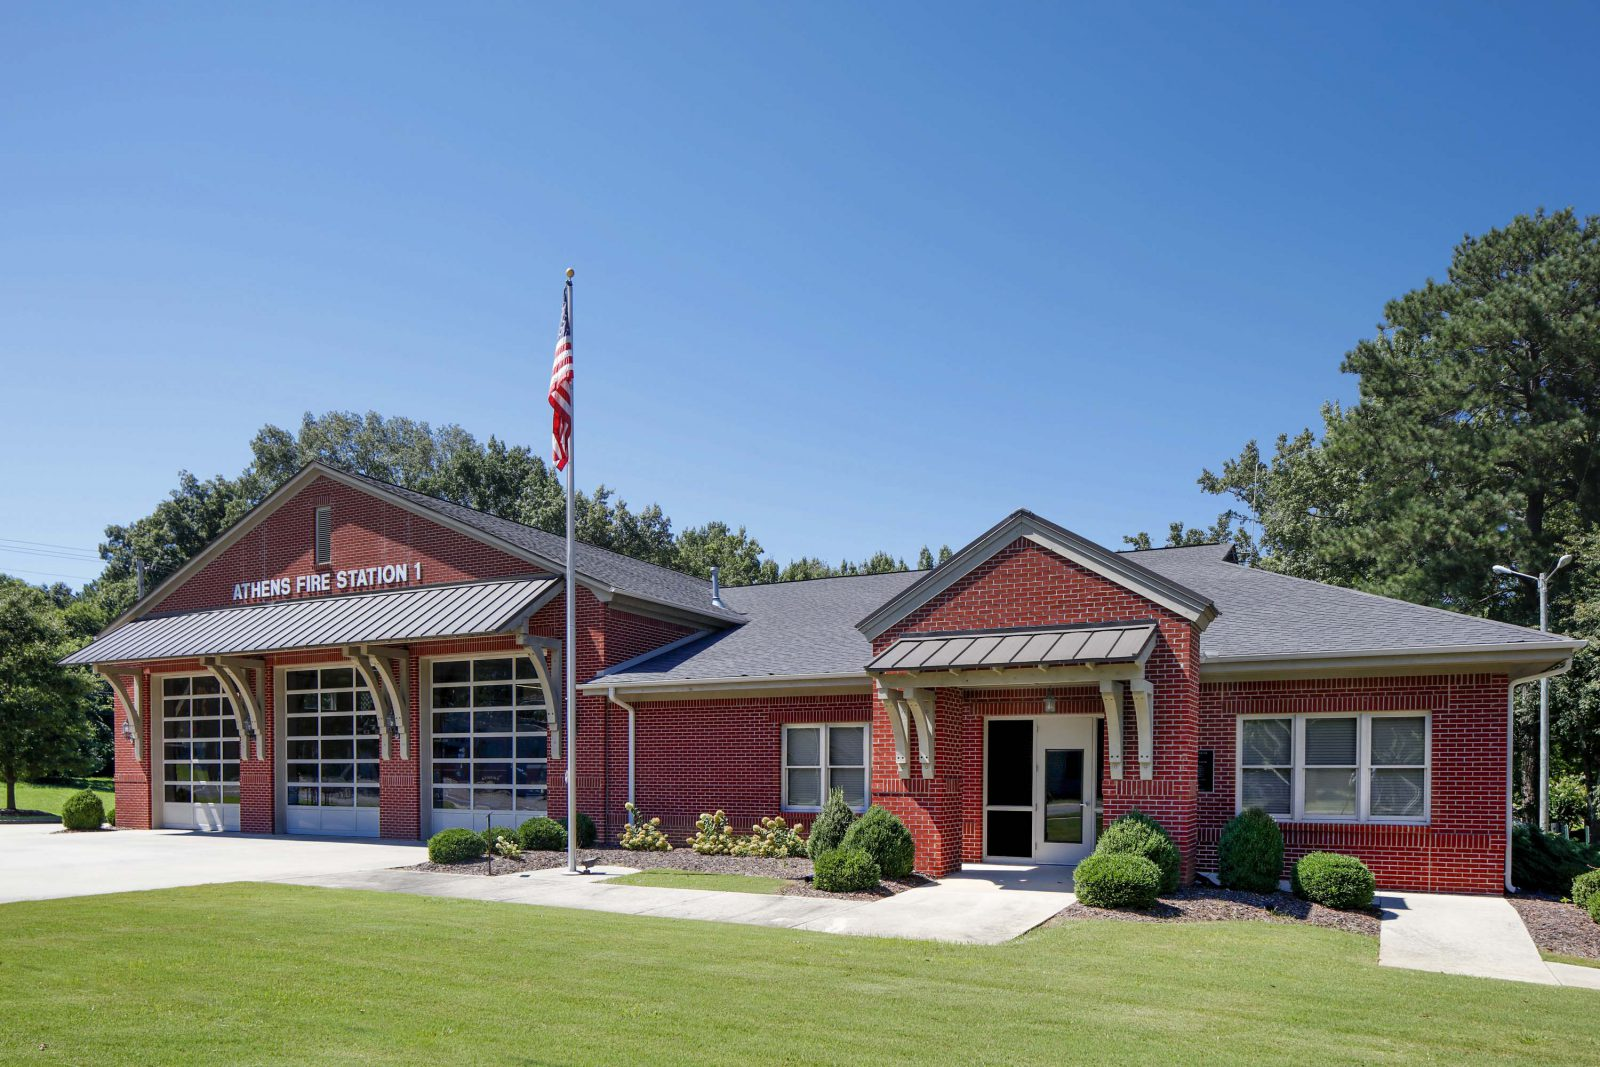 Athens Fire Station #1